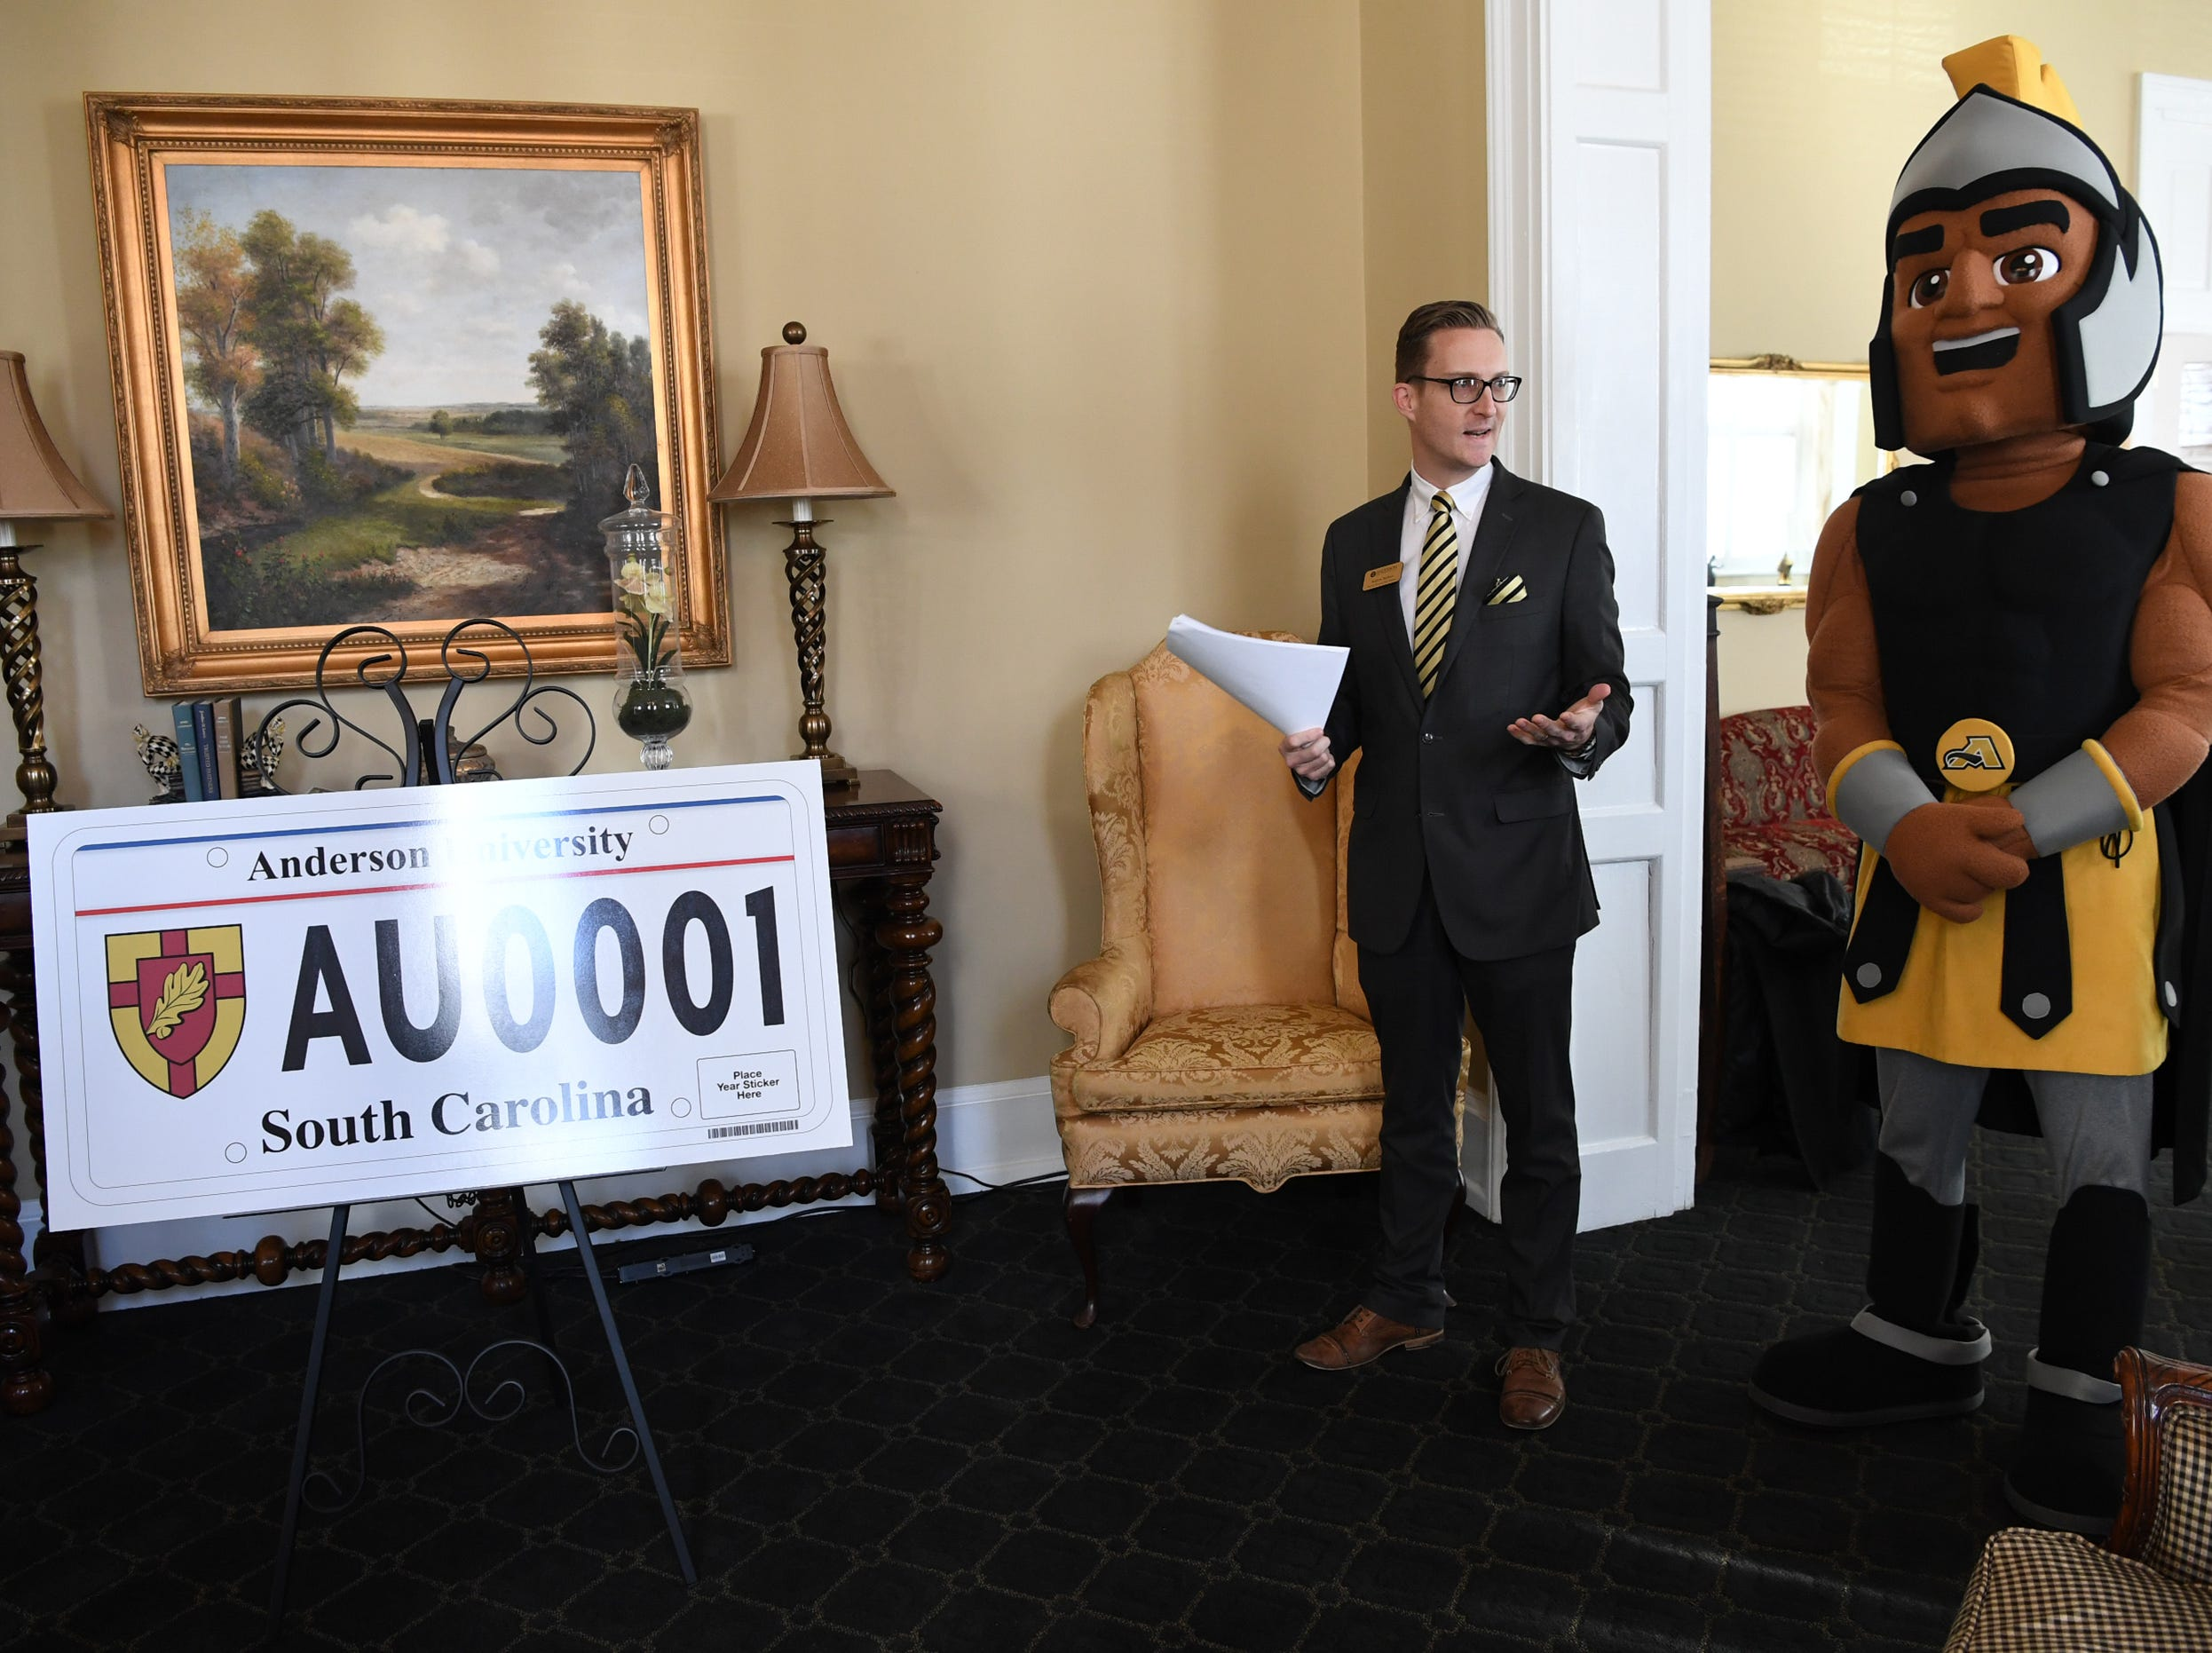 Andrew Beckner, left, of Anderson University media relations, and Troy the Trojans mascot gather to announce a new personalized license plate during a press conference at the campus administration building in Anderson Friday morning. The University plate, along with Clemson University and the University of South Carolina, are the only college or university plates available to personalize, said Perkins-Brown. The Anderson University plates can be applied for starting Monday, January 28, 2019 in person, not online, for $100 and an added fee if personalizing.